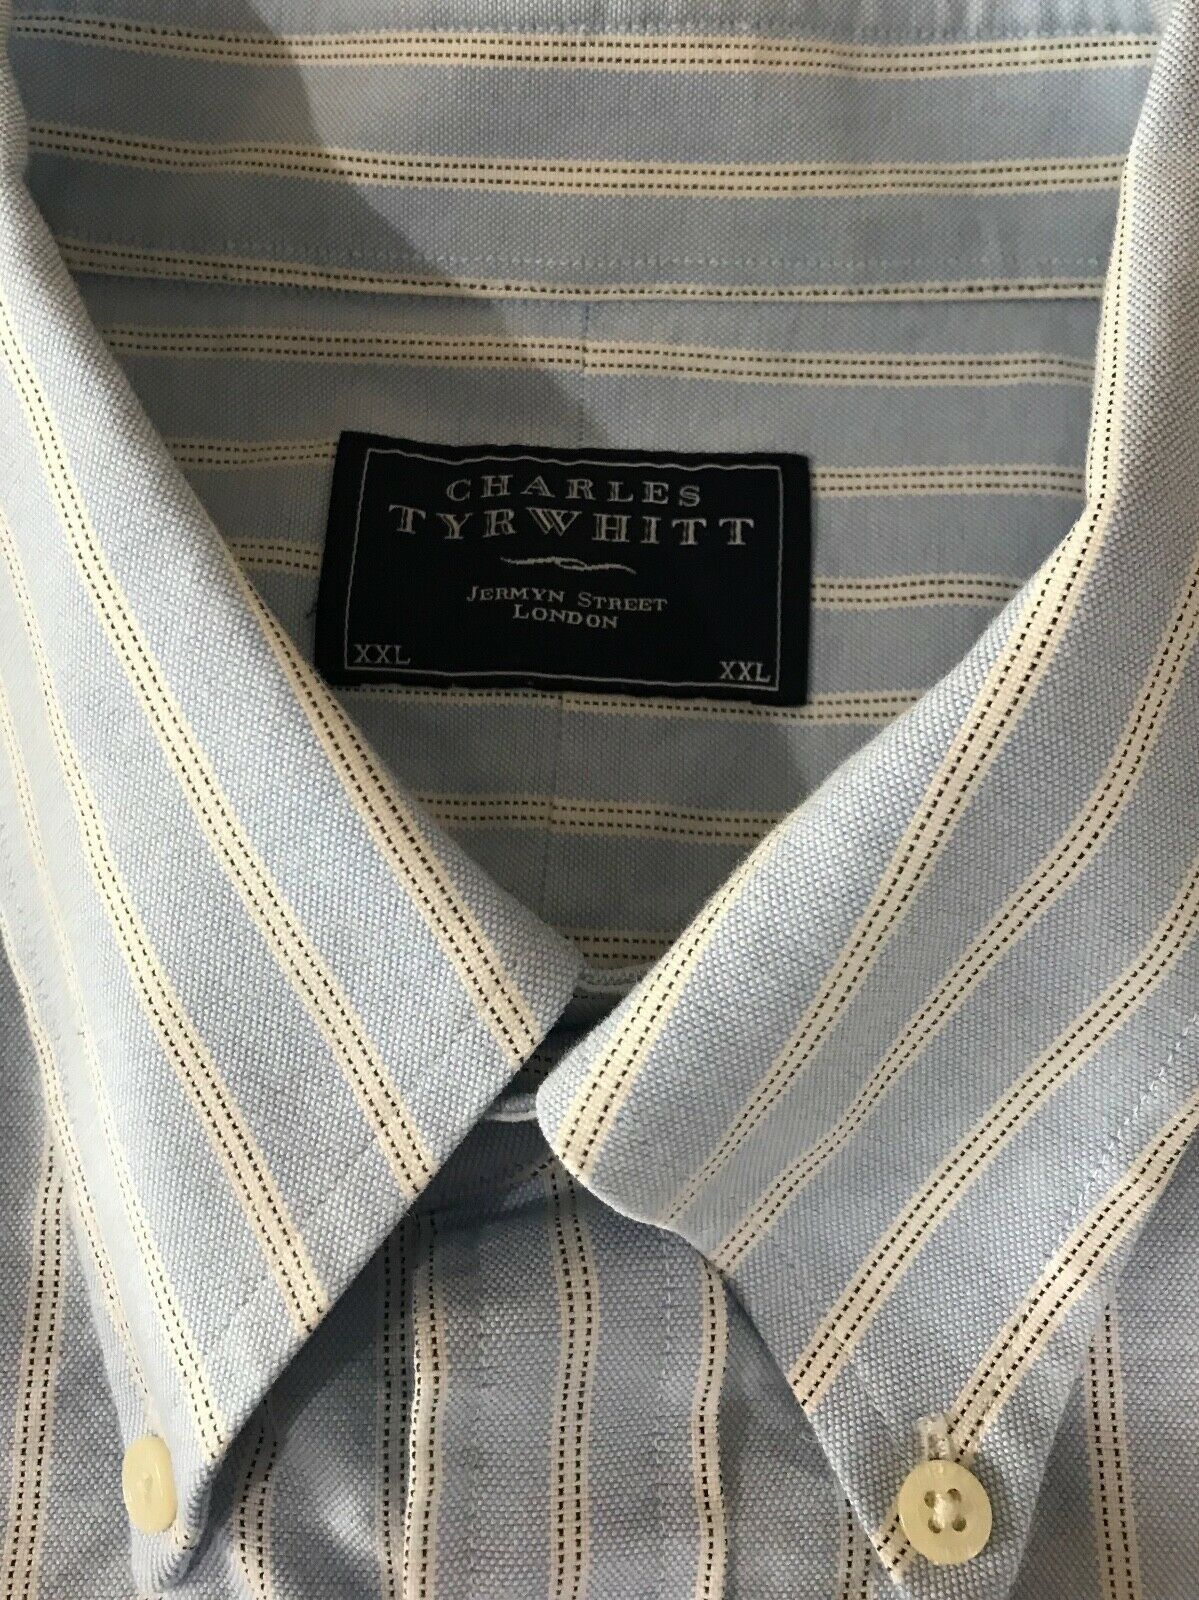 Charles Tyrwhitt Men's Button Down Long Sleeve Blue Stripe Oxford Shirt XXL  image 6